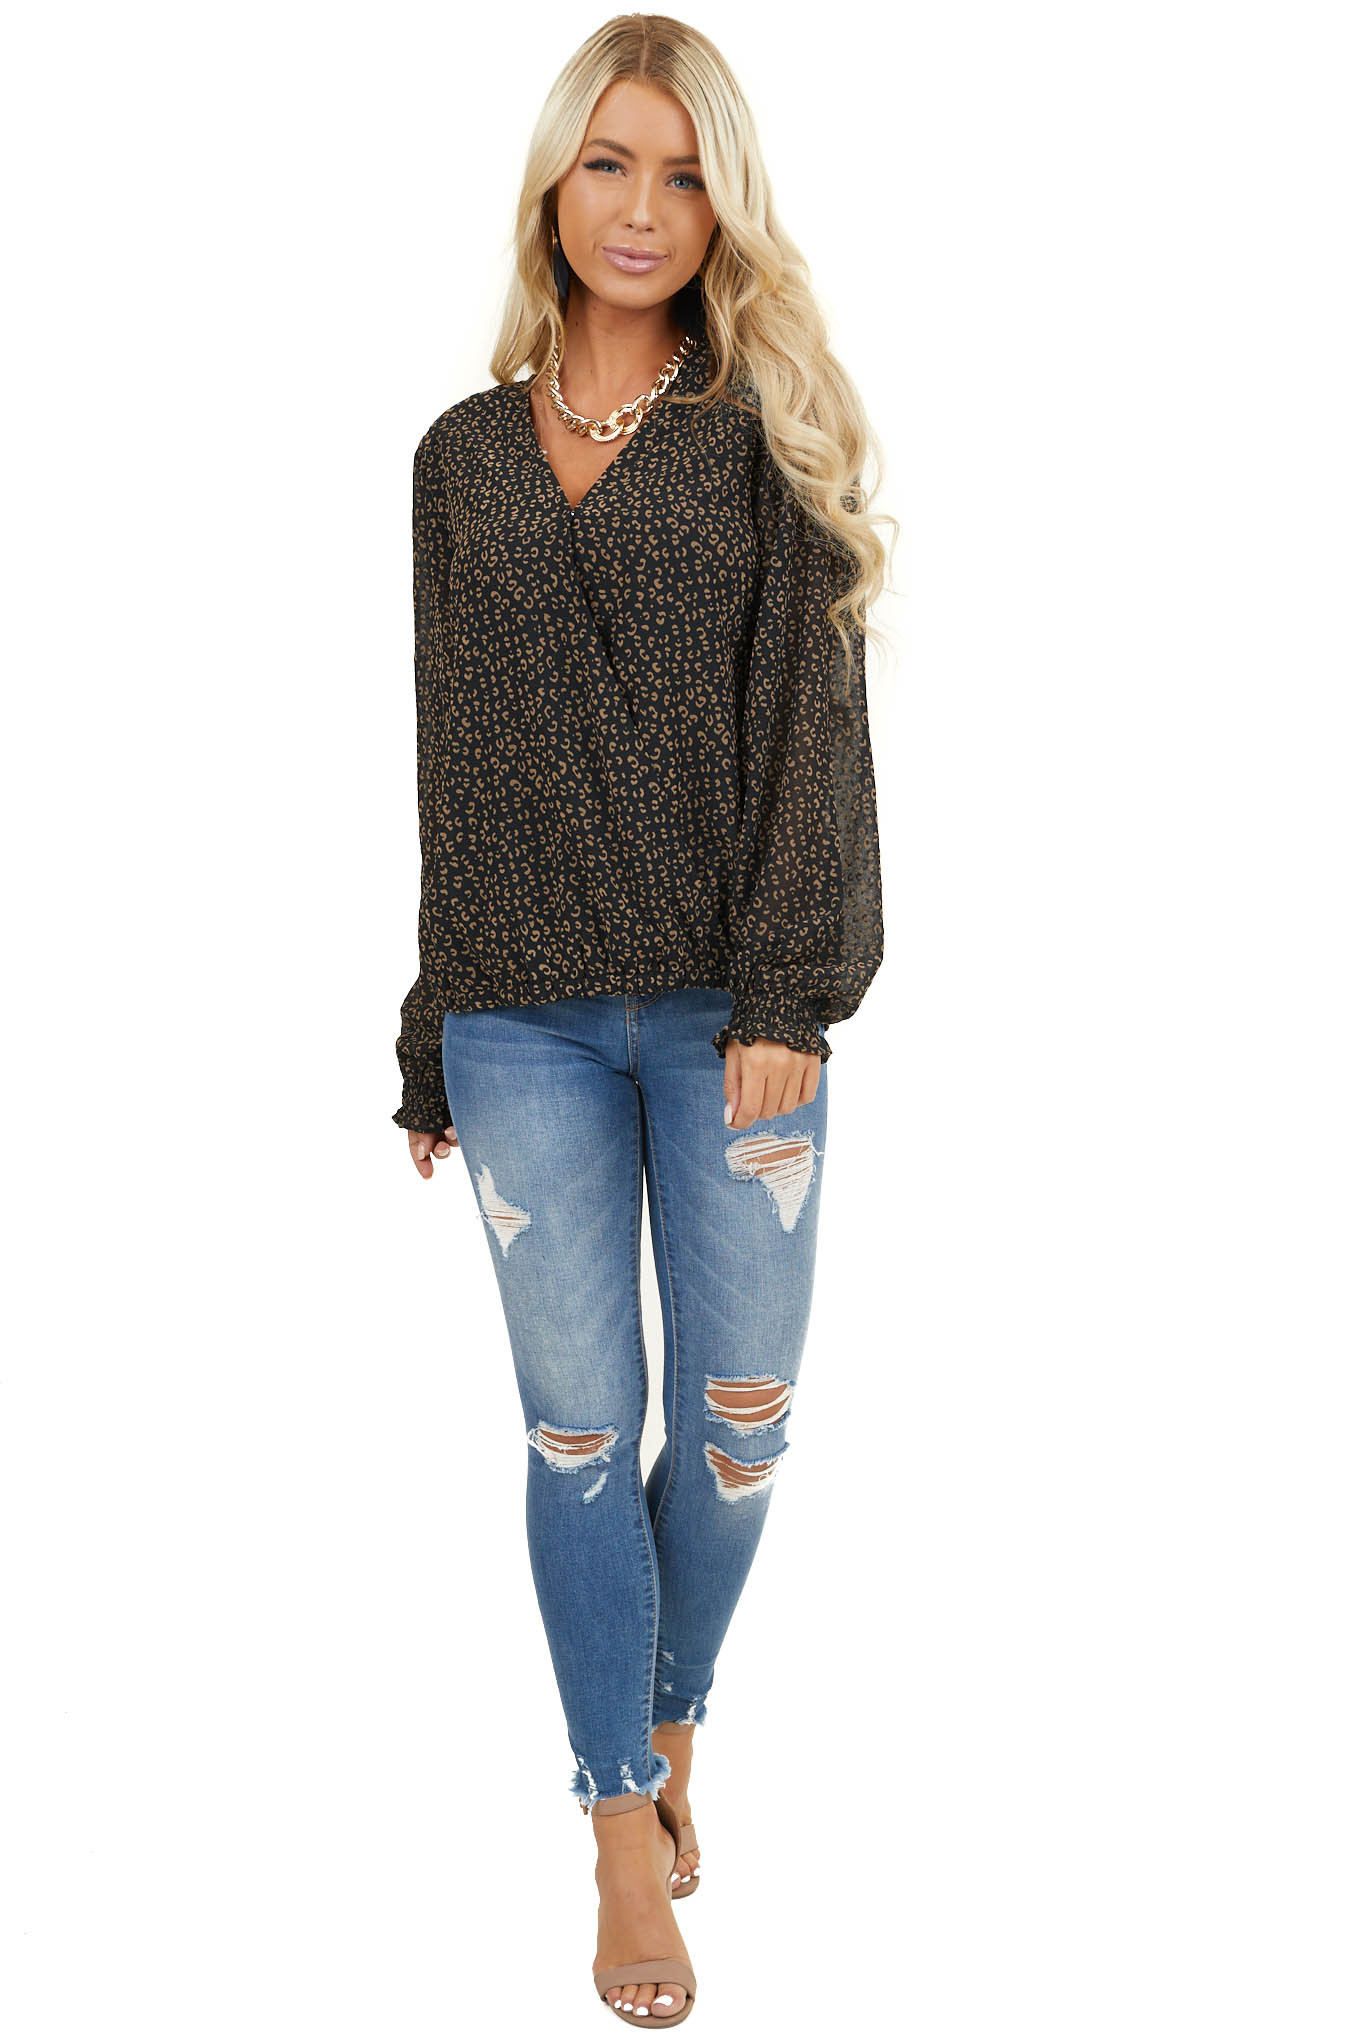 Black Leopard Print Surplice Woven Top with Long Sleeves